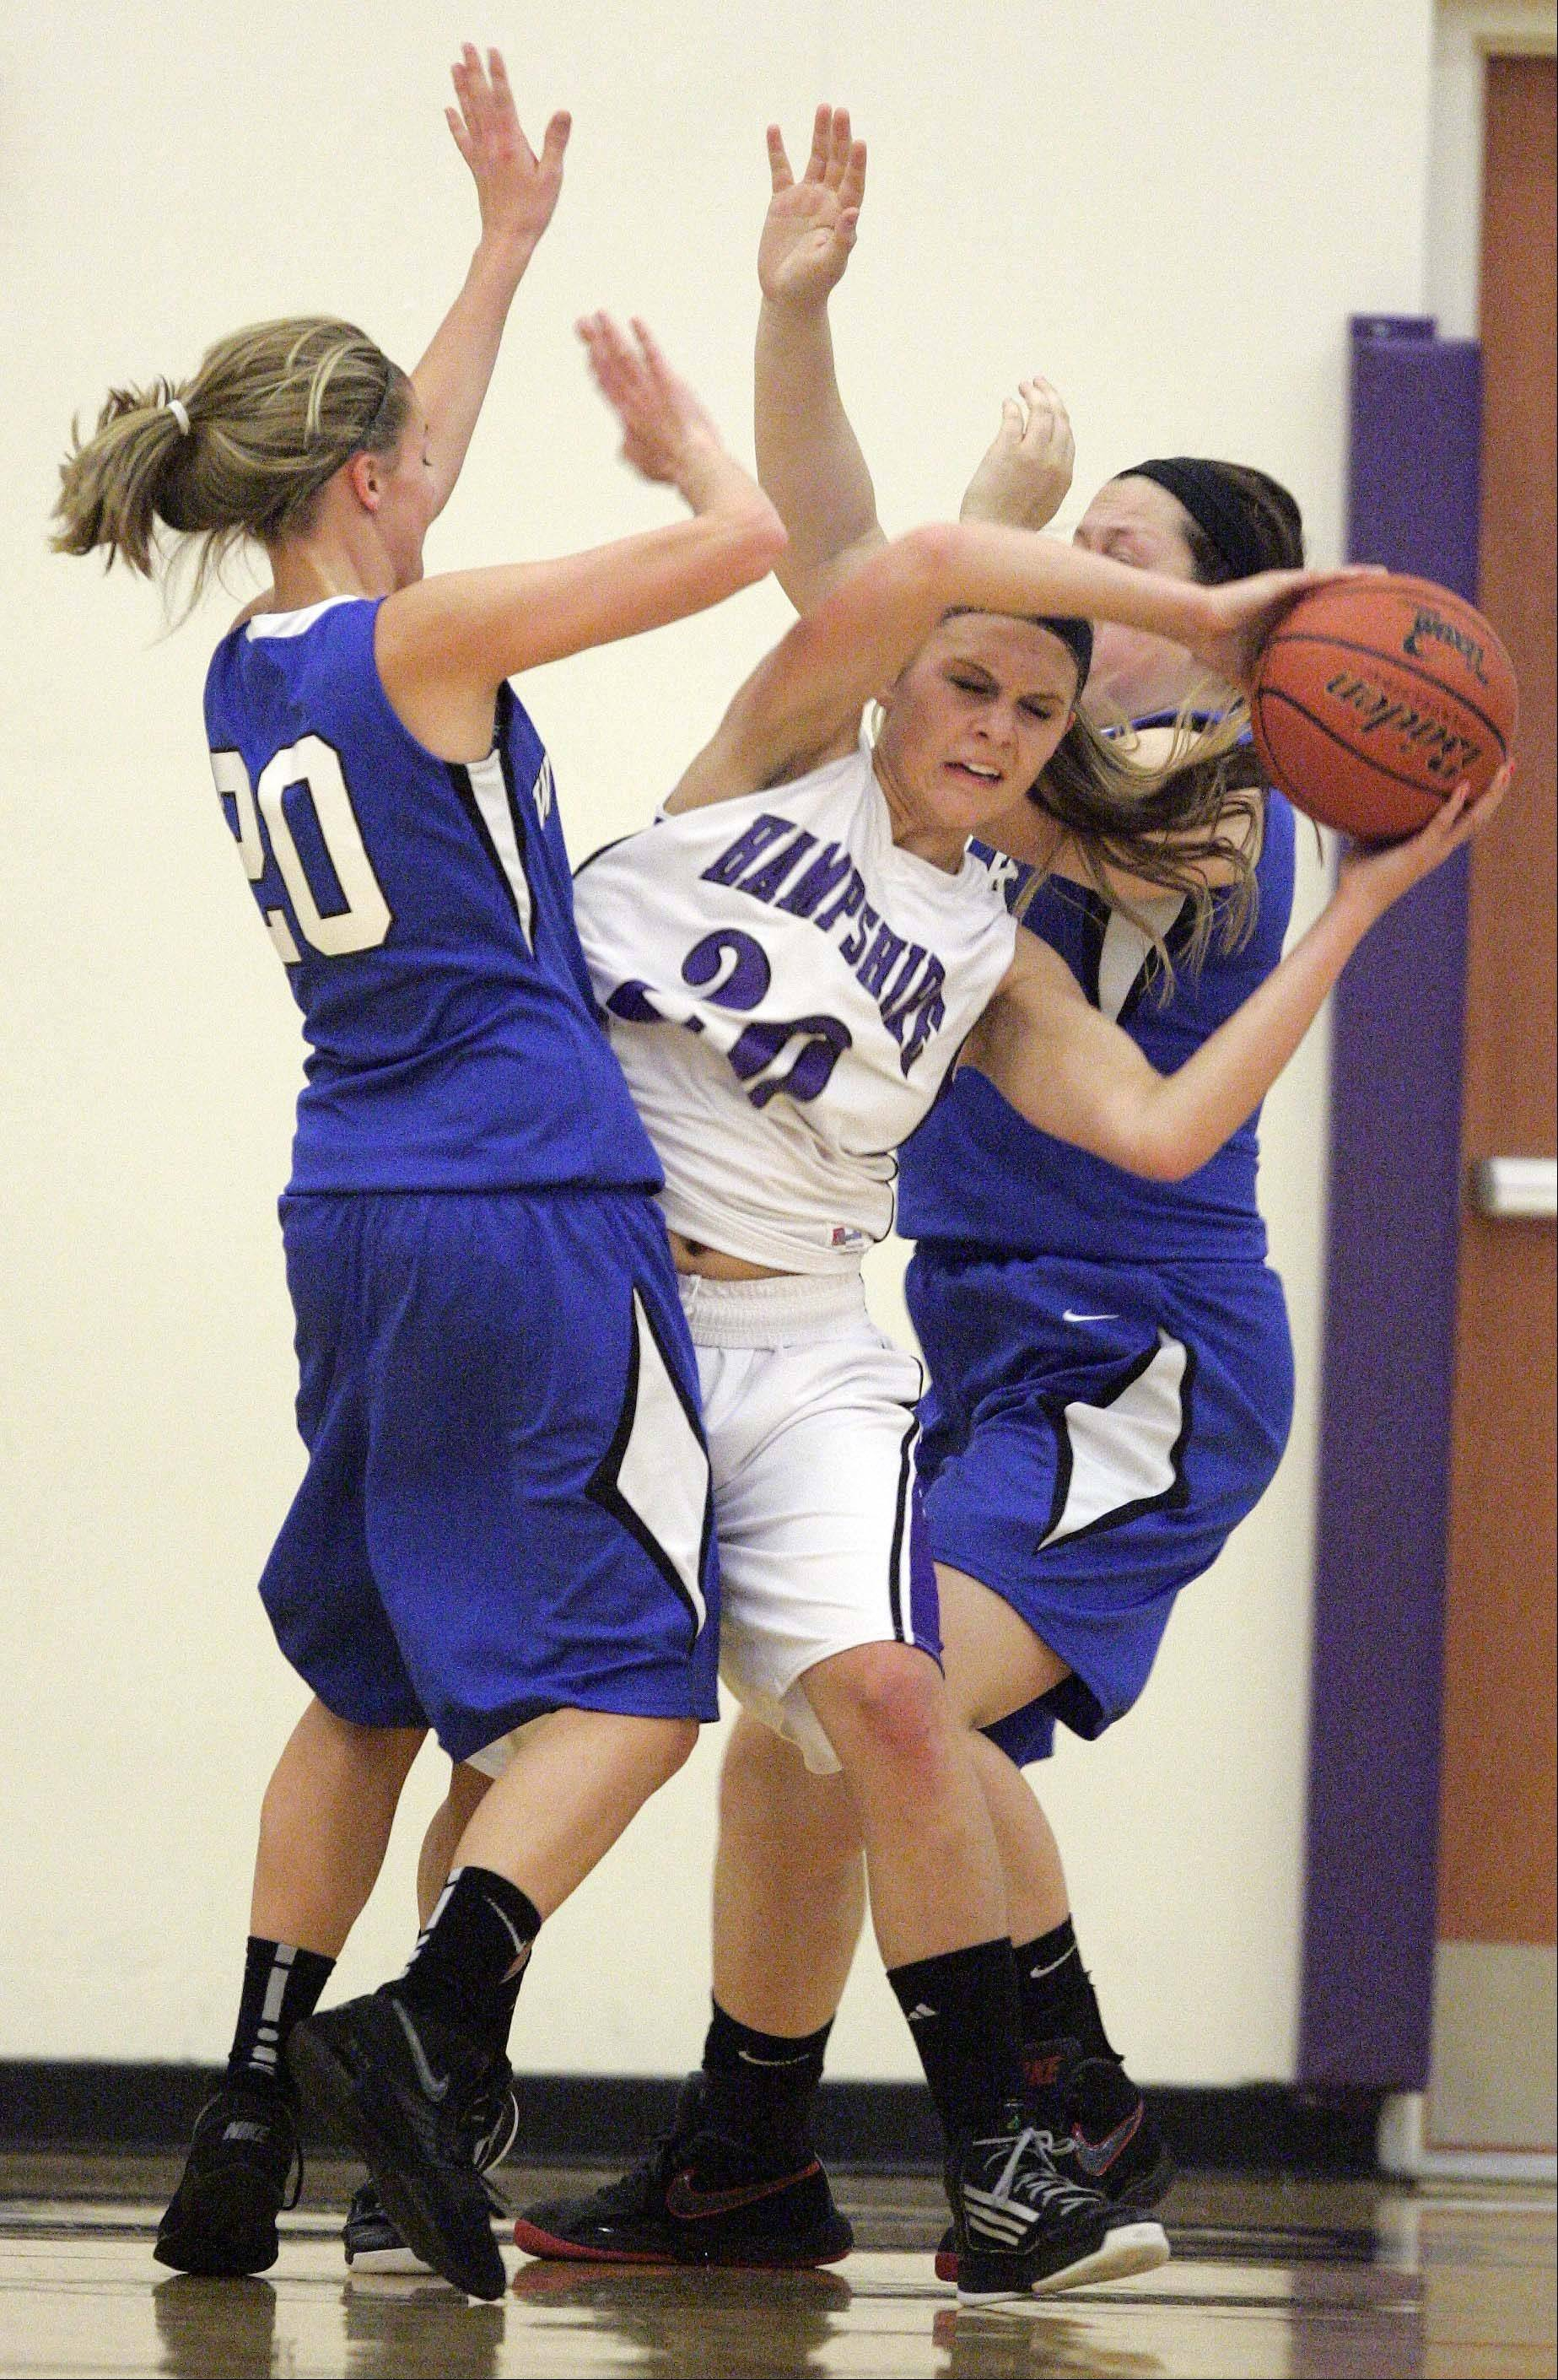 Hampshire's Lizzy Panzica (20) slips between Woodstock's Sydney Haulotte and Amber Roberts (44) Saturday at Hampshire..